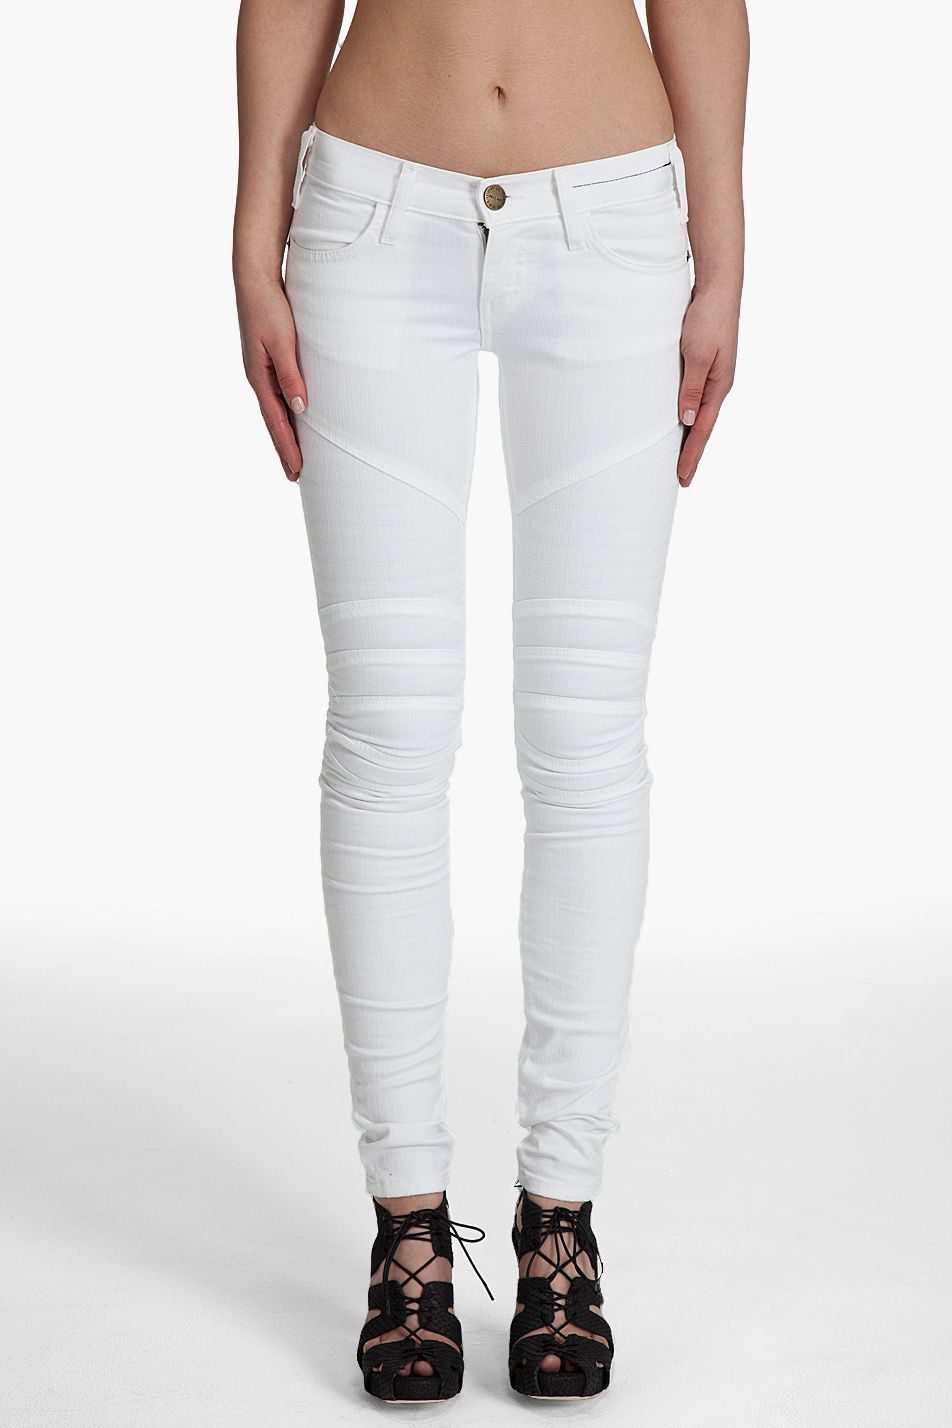 Awesome White Jeans for Women : White High Waisted Skinny Stretch ...